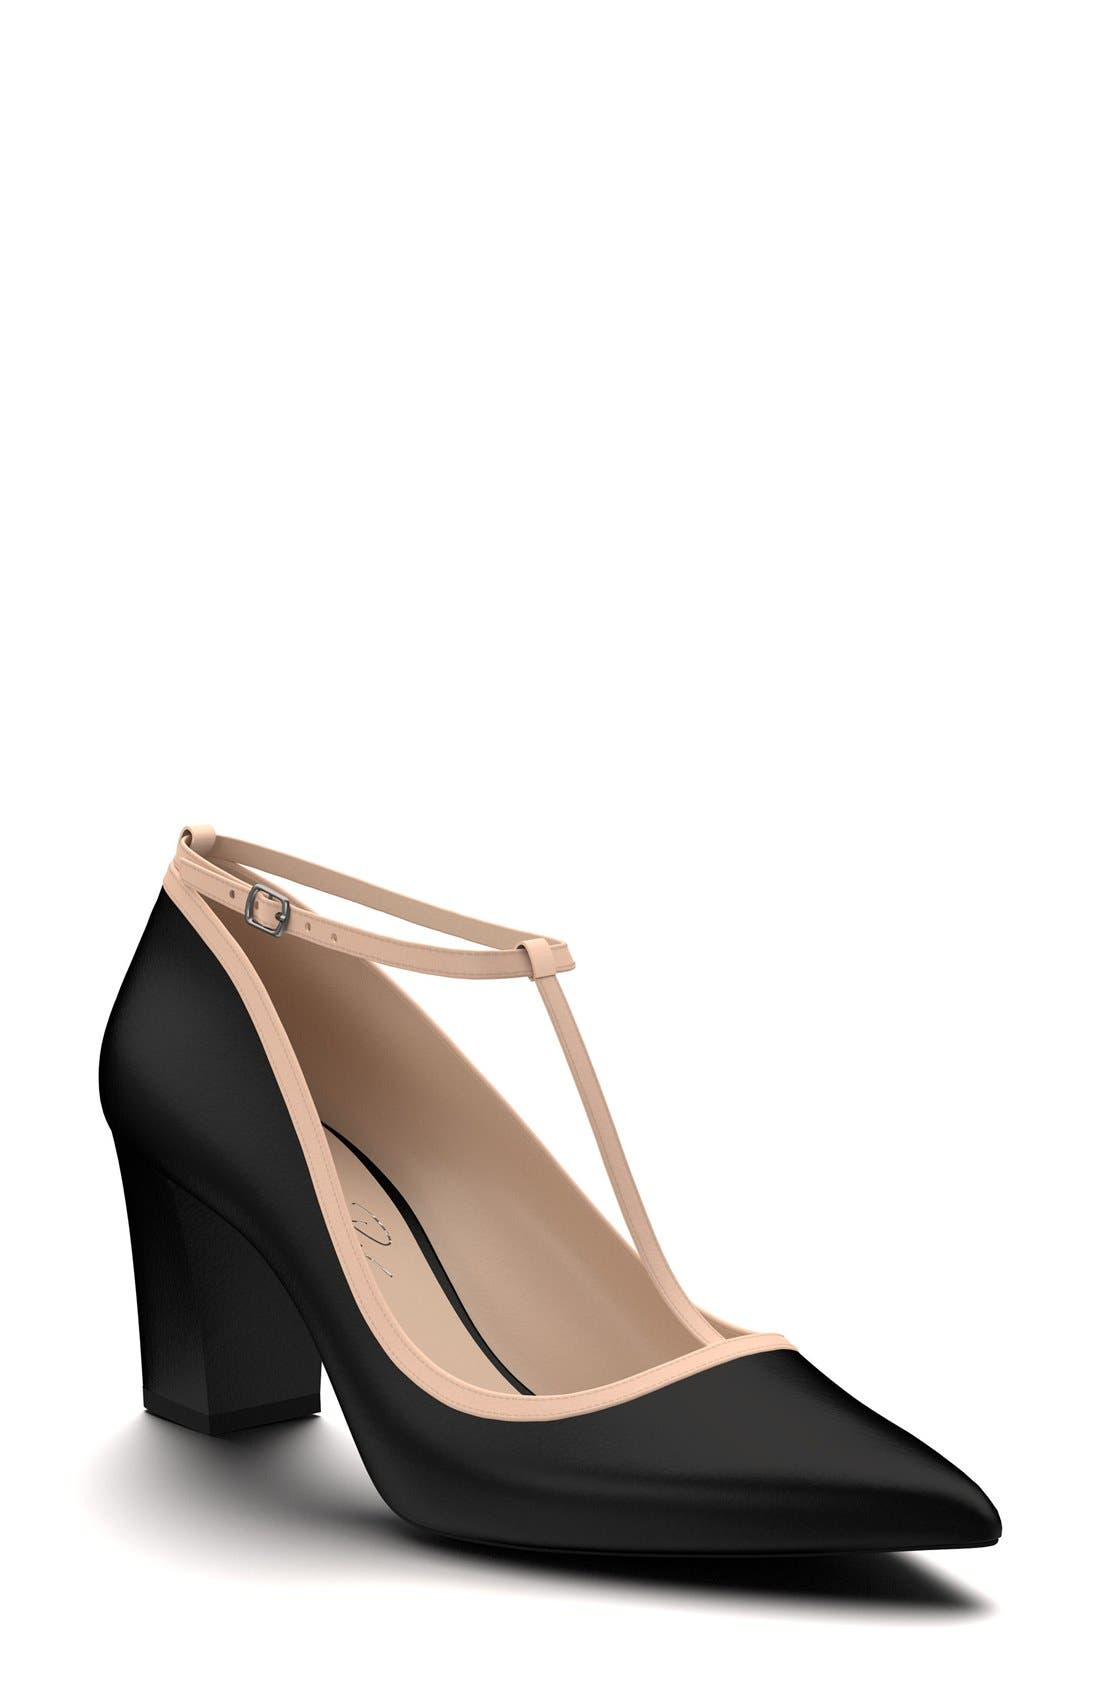 SHOES OF PREY Pointy Toe Pump